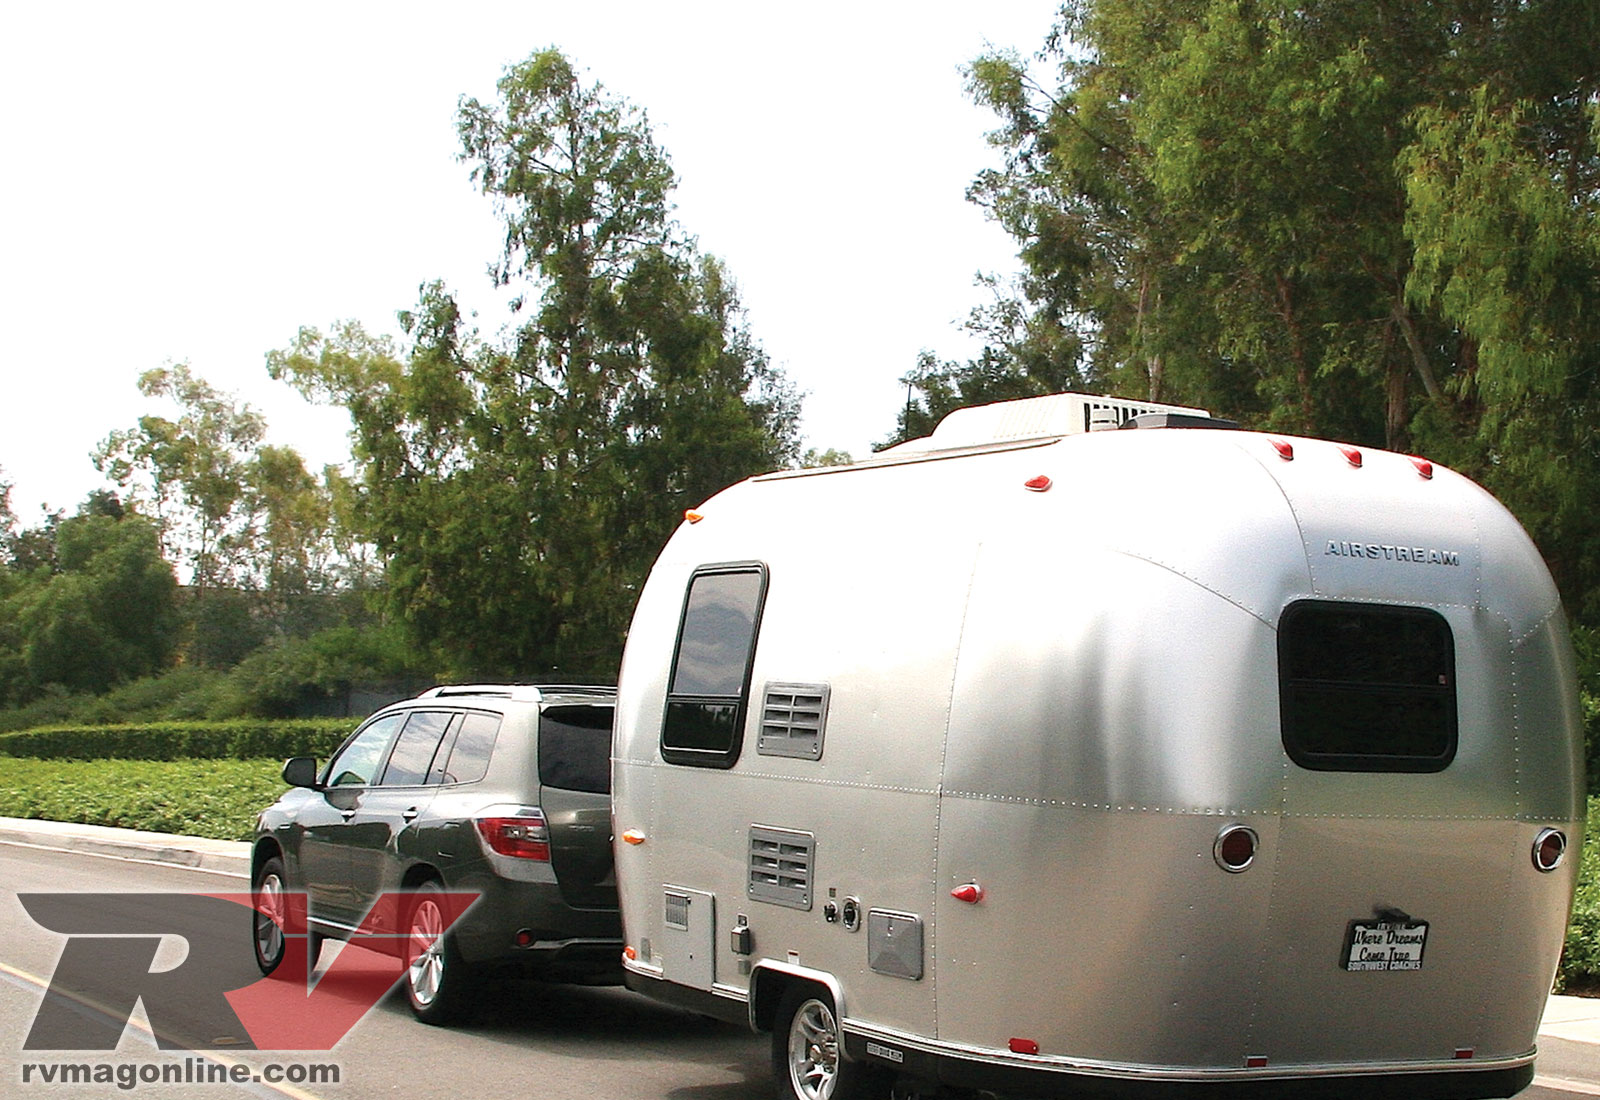 0906rv 01 2008 Toyota Highlander Hybrid Airstream Trailer Left Rear View Photo Gallery 4 Photos